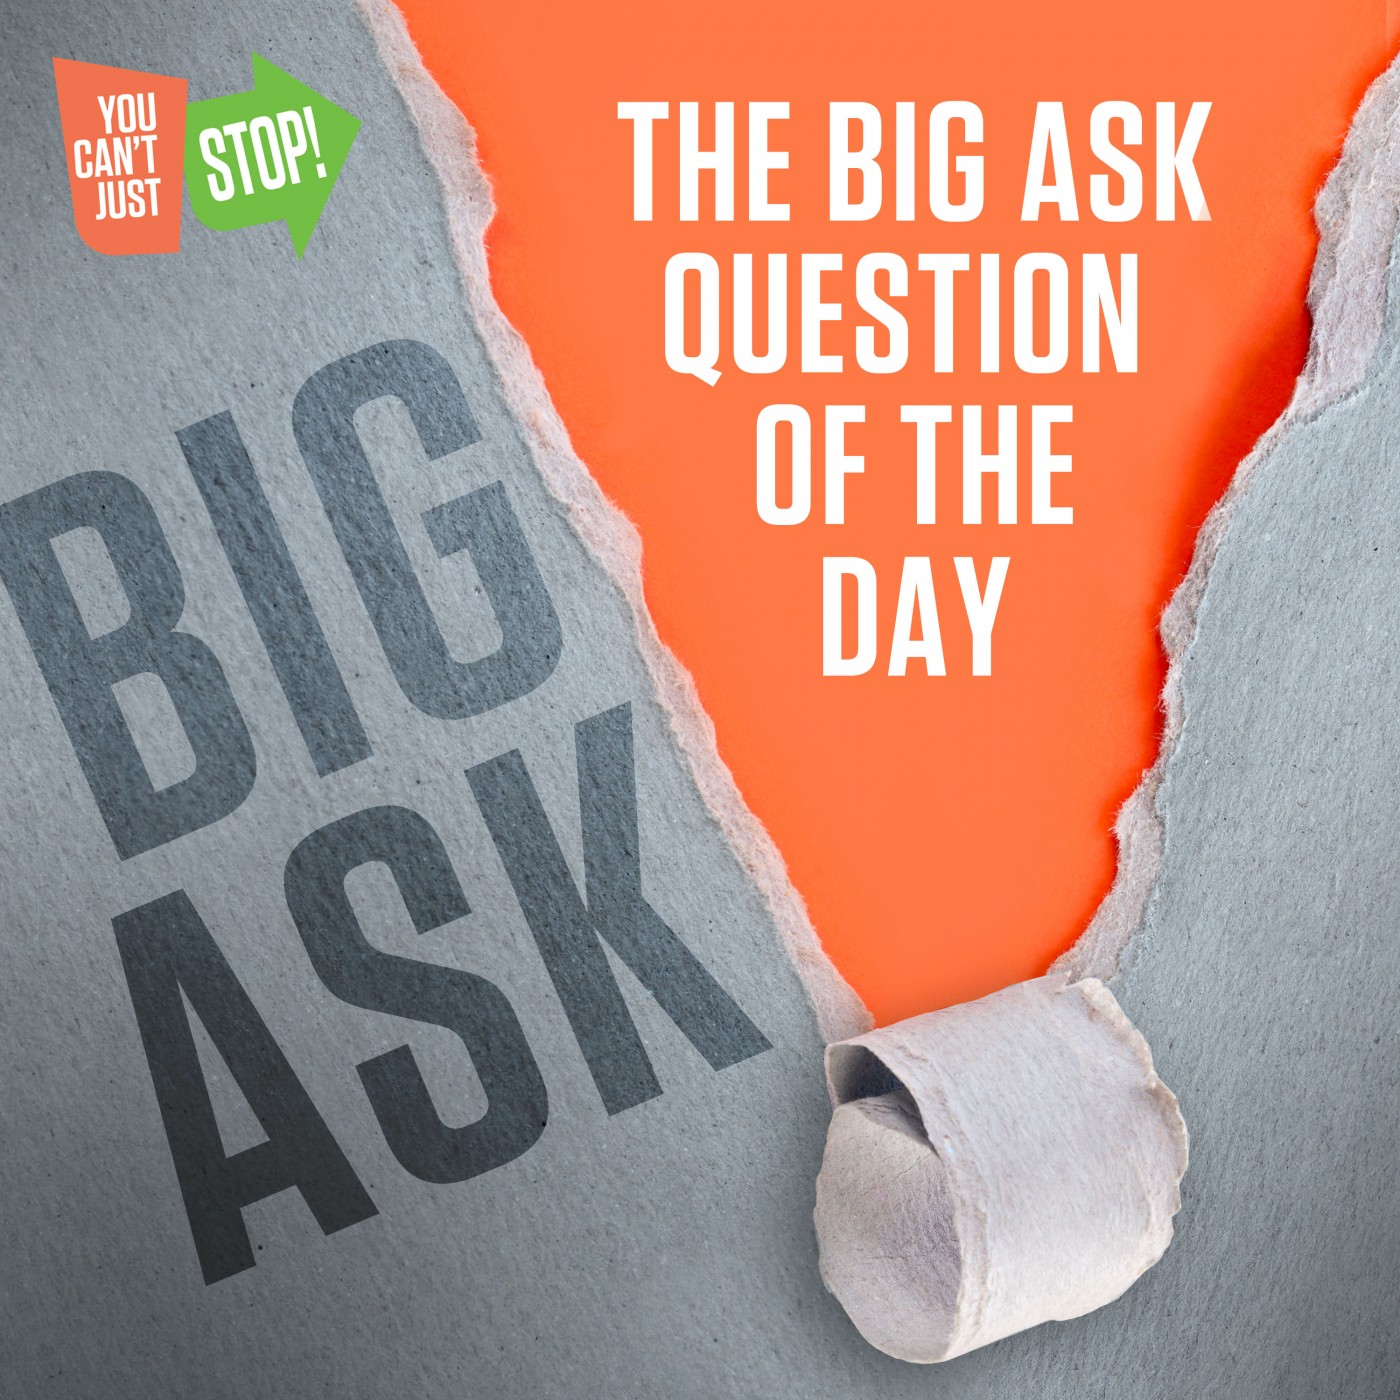 Big Ask Question of the Day